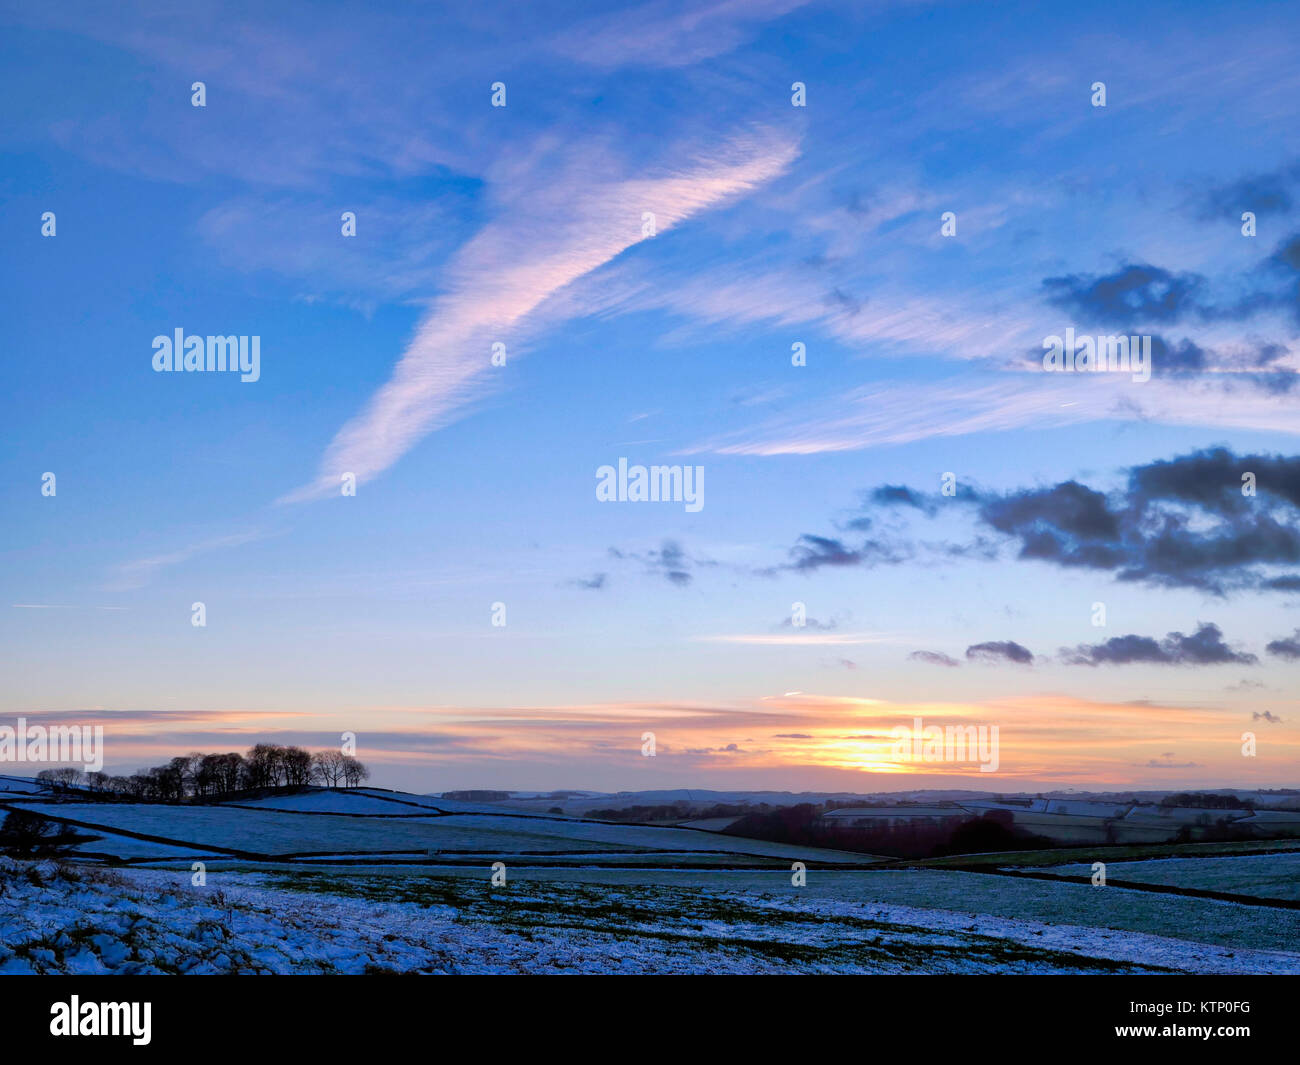 Moat Low, Derbyshire. 28th Dec, 2017. UK Weather: View from Moat Low Derbyshire spectacular sunset over the snowStock Photo